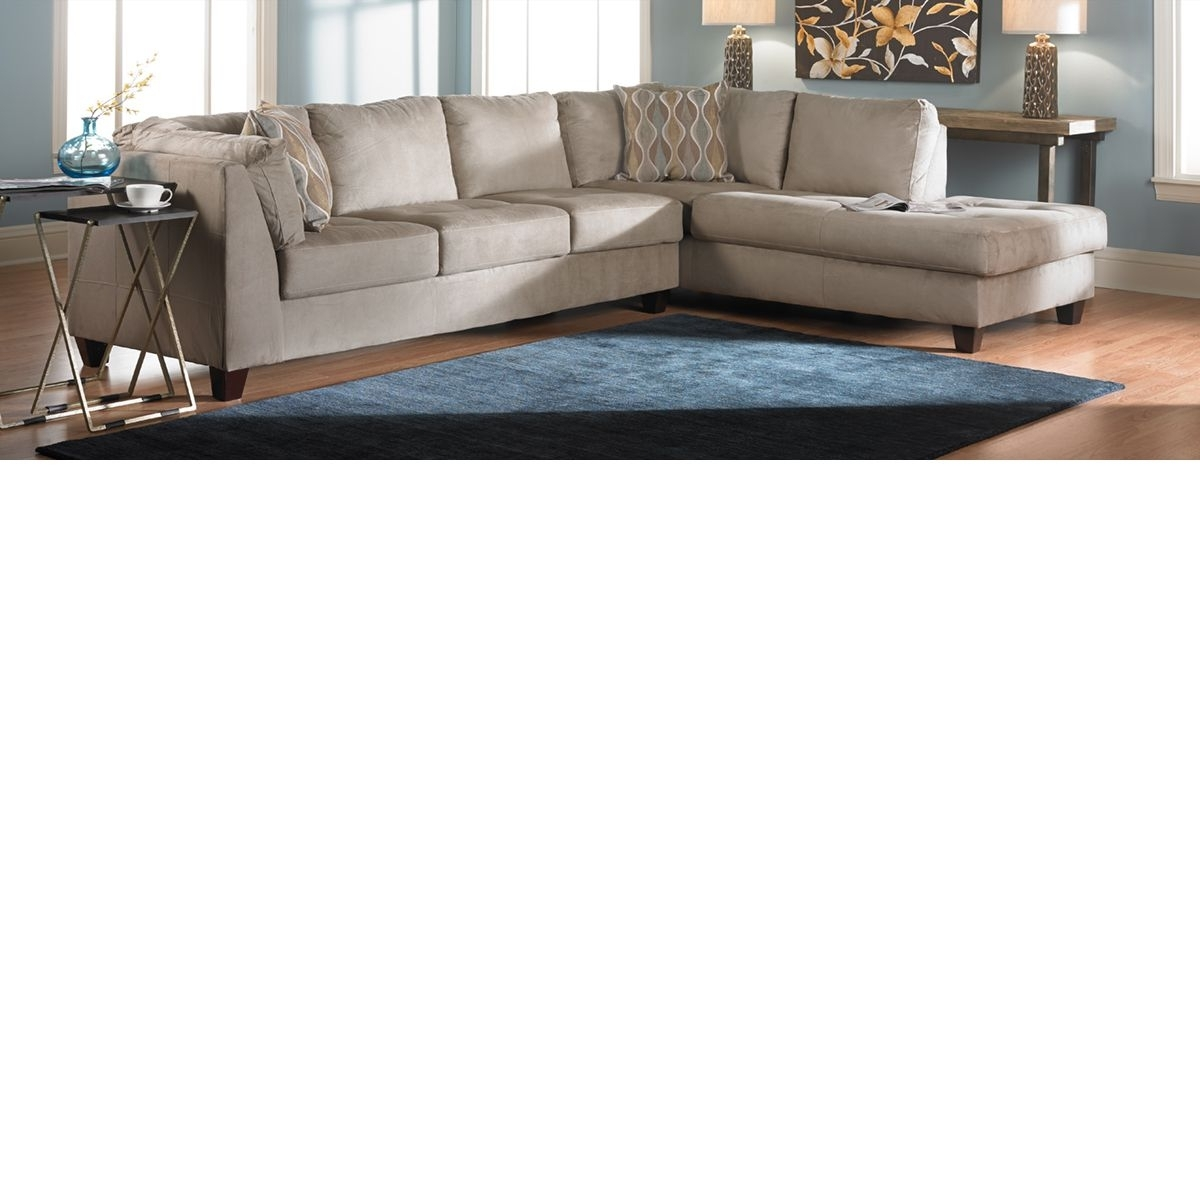 Stunning The Dump Furniture Sectional Sofa For Home Pic Haynes In 2018 Virginia Beach Sectional Sofas (View 9 of 20)